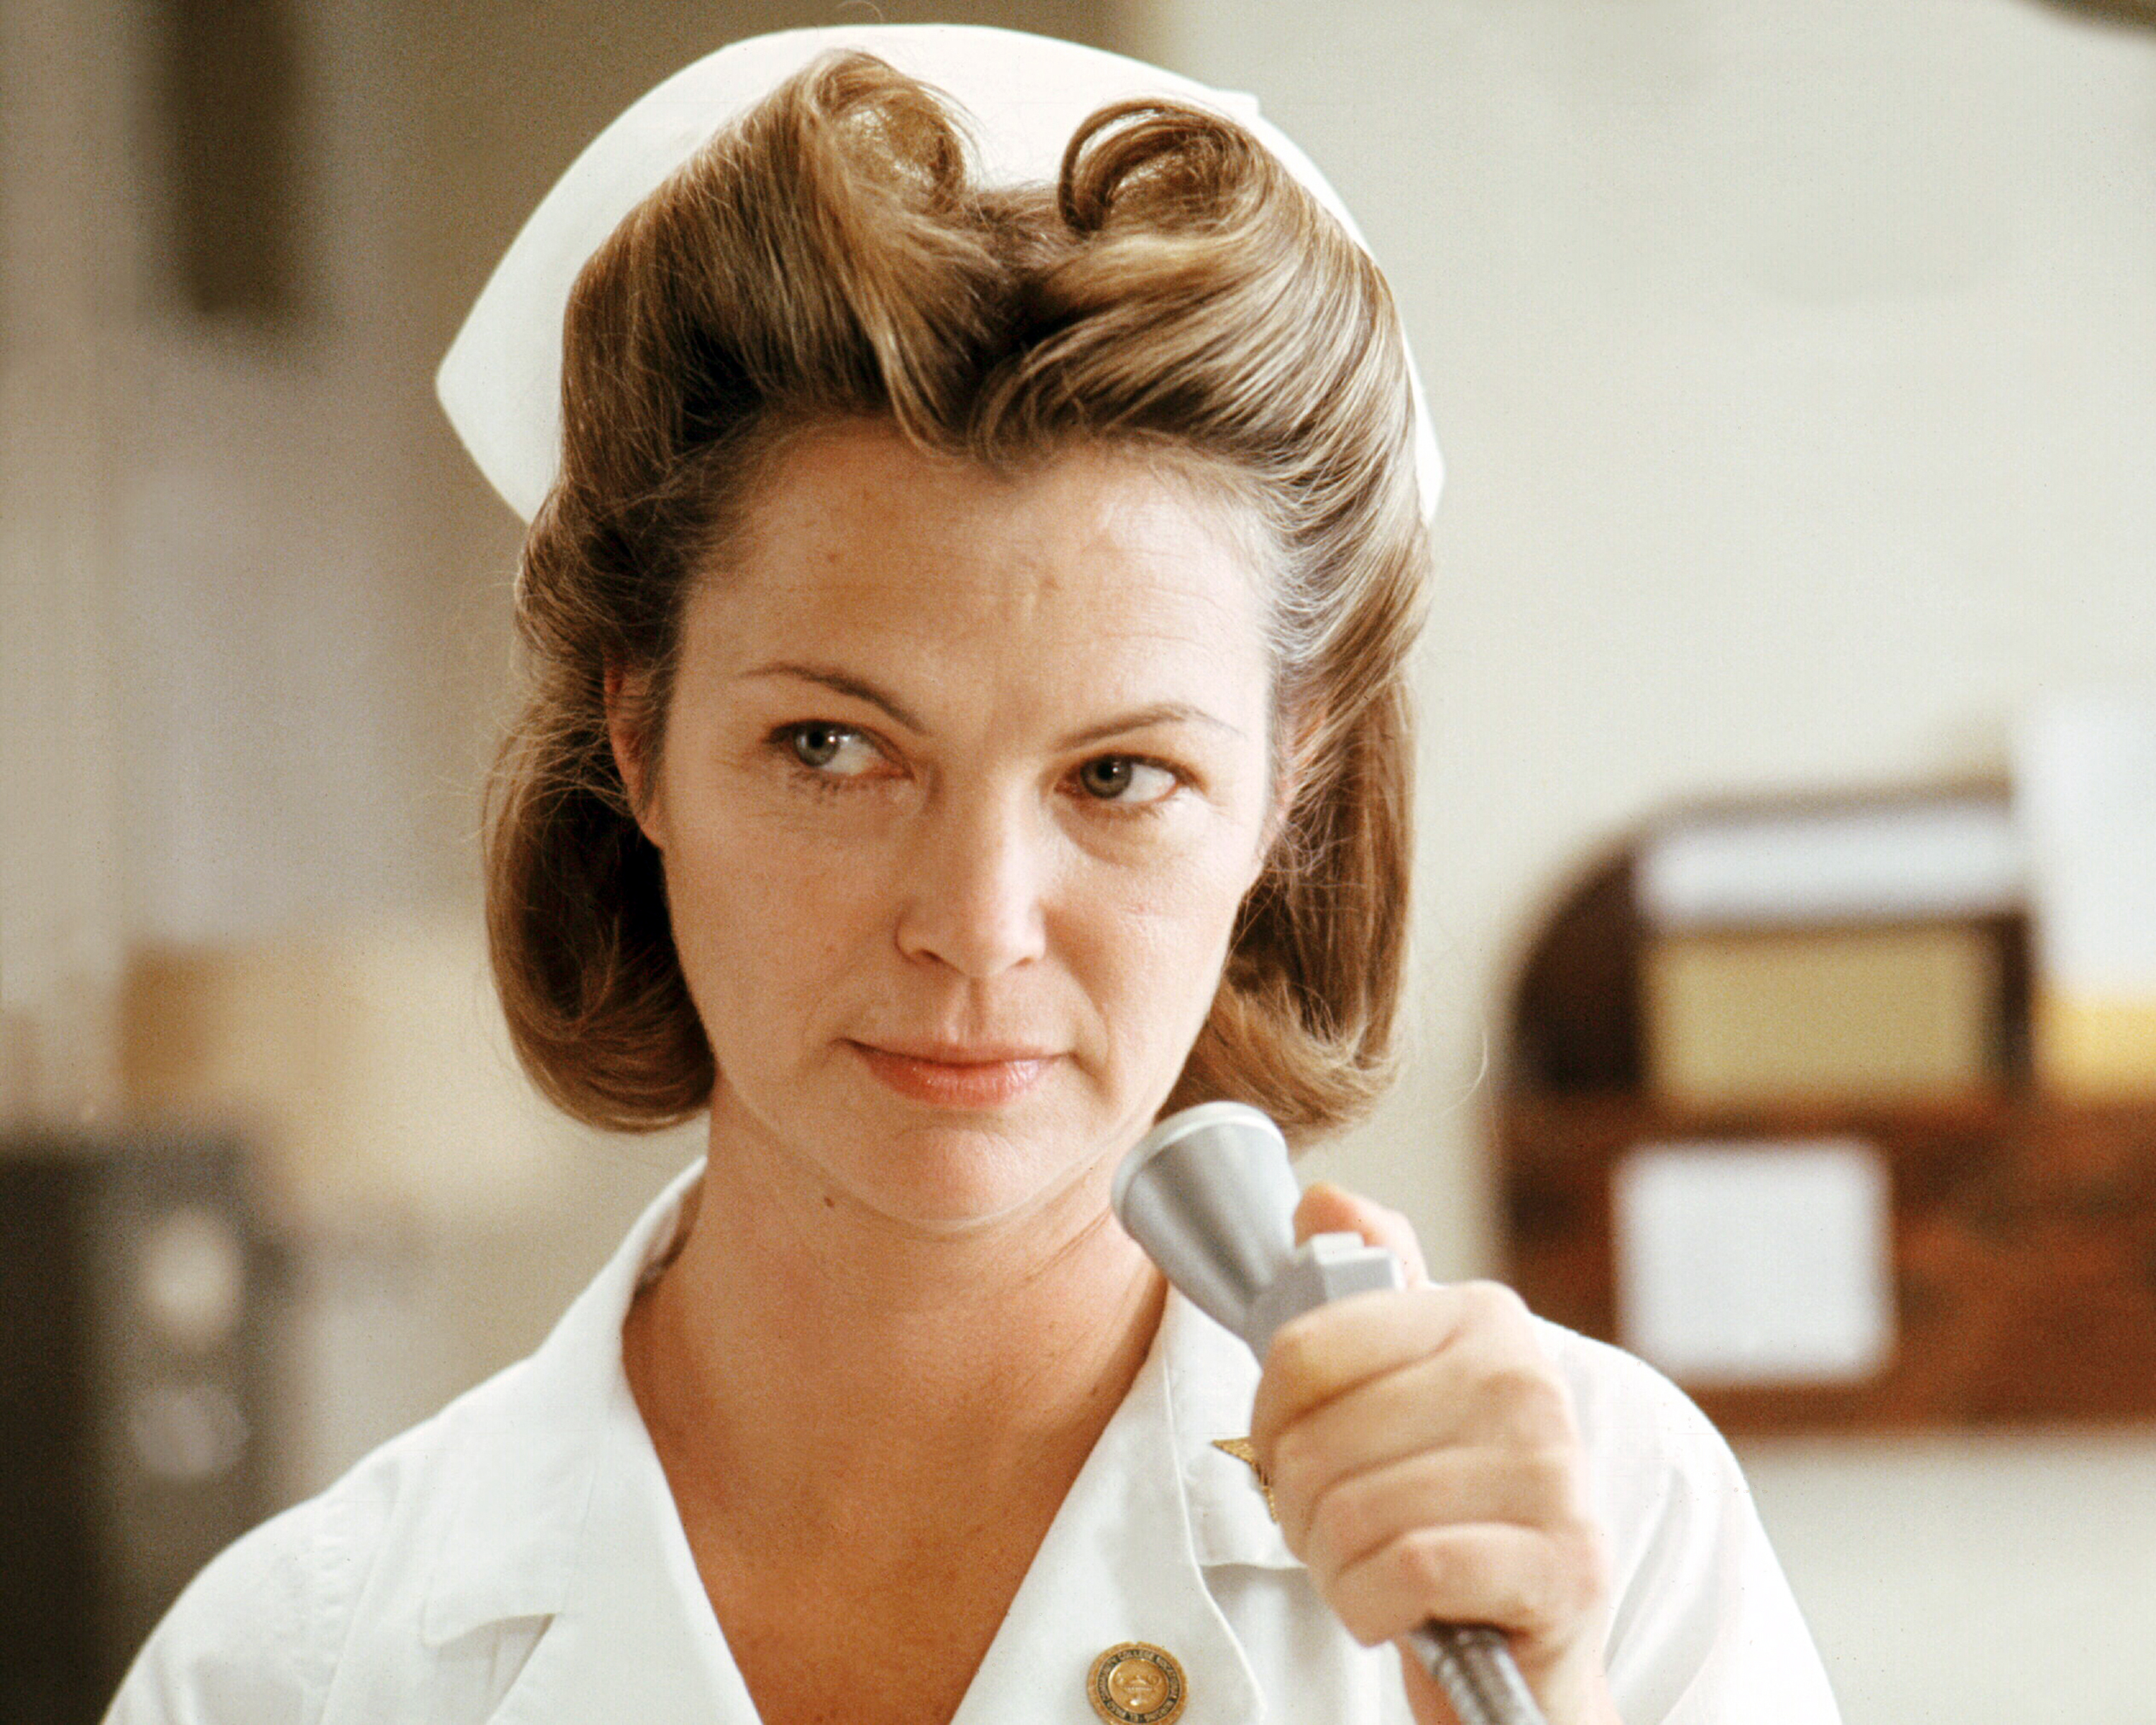 Louise Fletcher as Nurse Ratched in 'One Flew Over The Cuckoo's Nest', directed by Milos Forman, 1975.